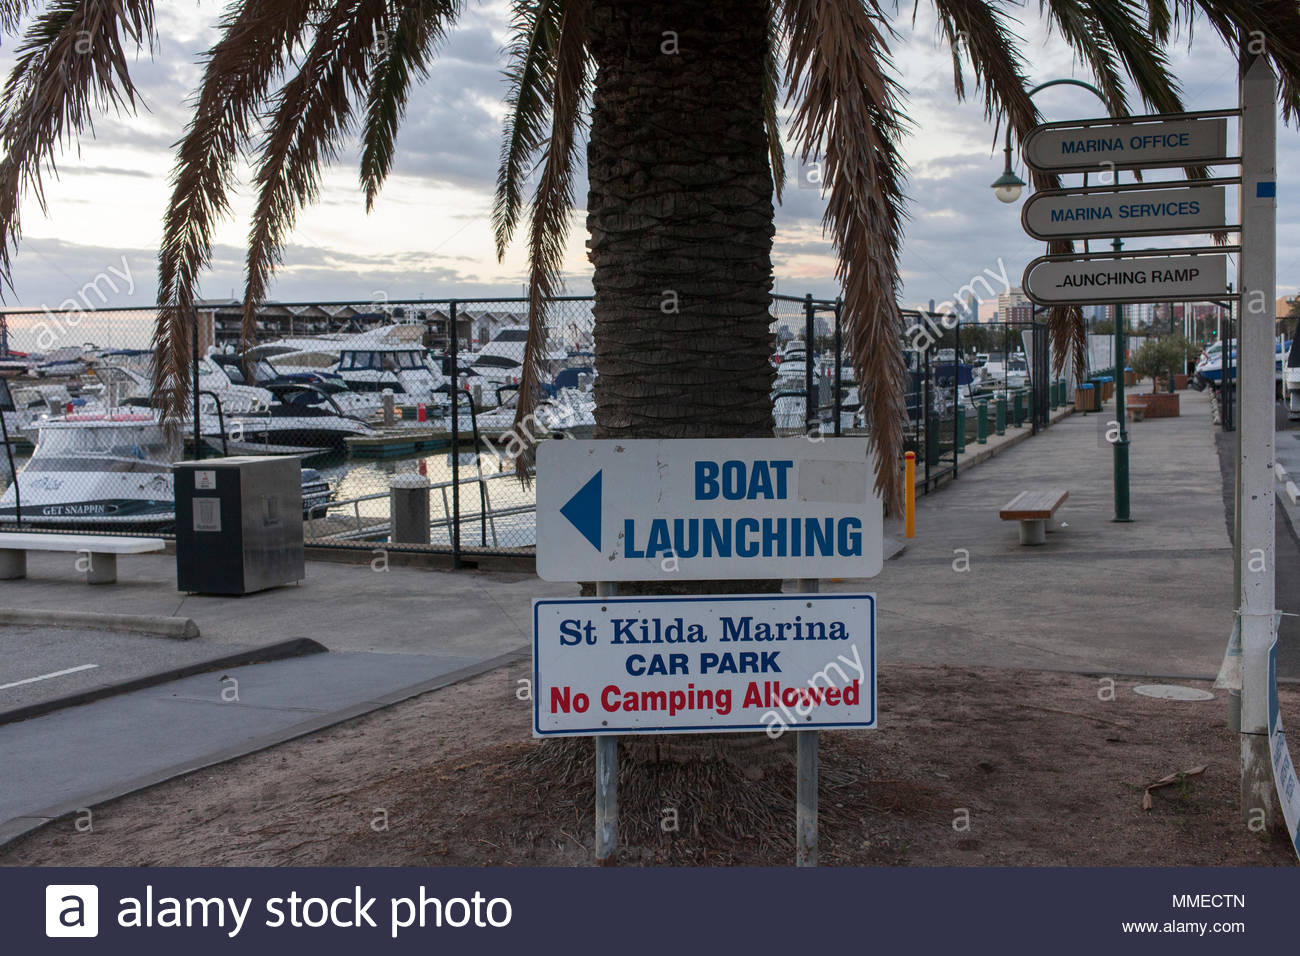 St Kilda Marina Car Park and Boat Launching Sign with No Camping Aloud, under a palm tree with boats in the background - Stock Image